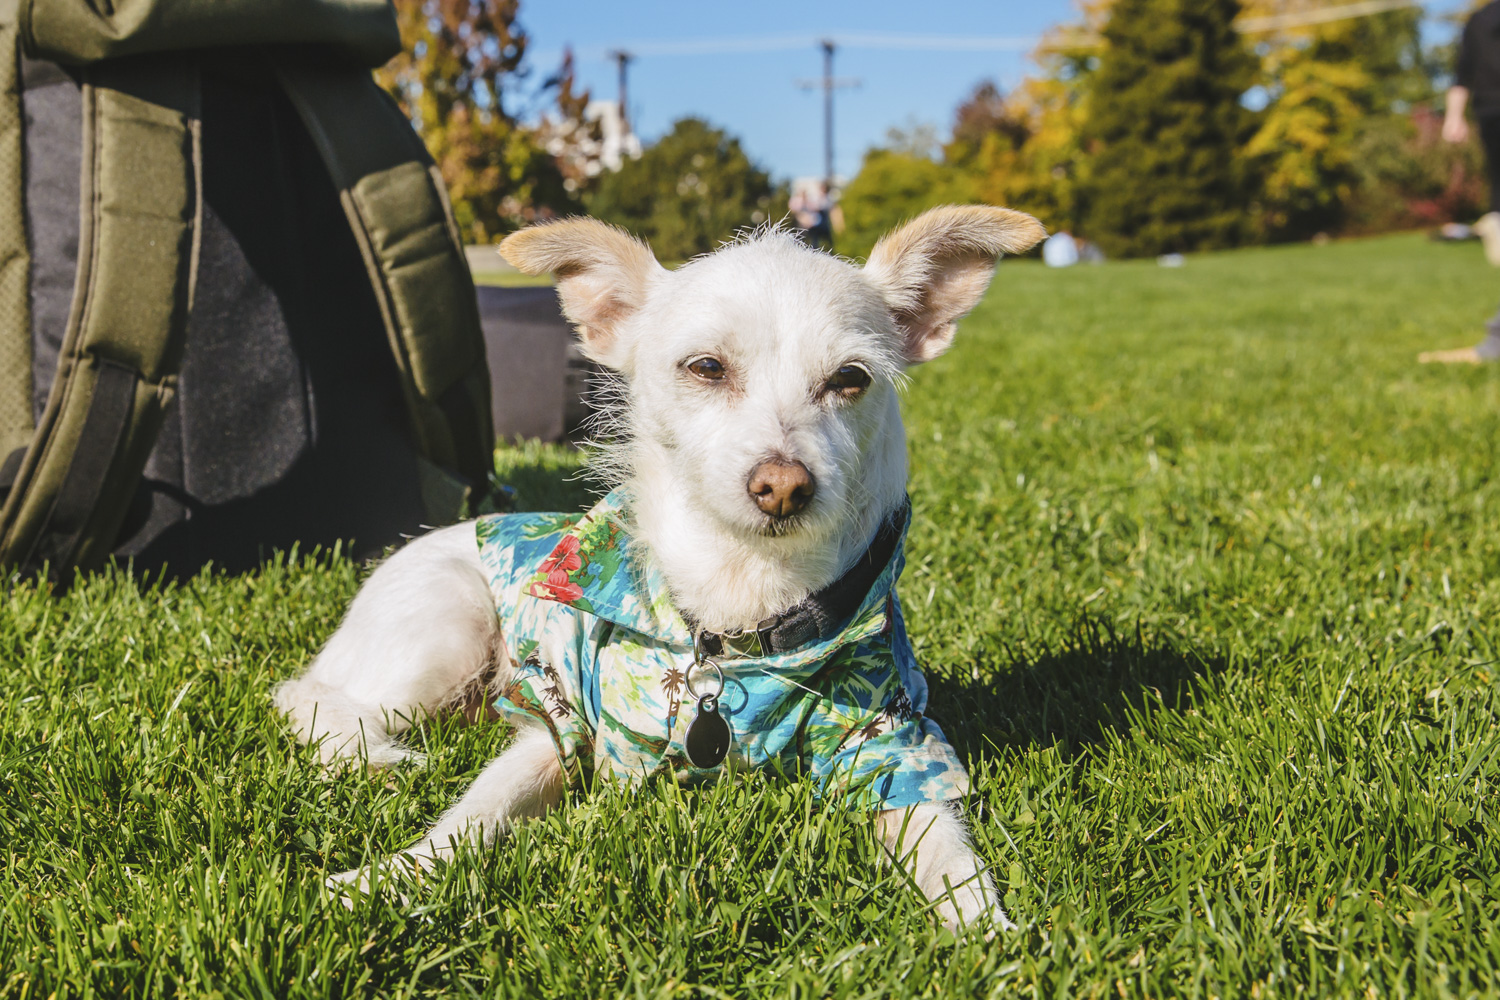 This tiny floof is Penny! Penny is a 14-year-old Chihuahua/Cairn Terrier Mix. Penny is originally from Los Angeles but made the trek up to Seattle after the 2010 wildfires in LA. Penny likes going to her mom's office, riding in her mom's backpack, and being a plus one! She also loves snow, hikes, sand and hair dryers. Penny dislikes alcohol (but loves going to bars), postal service workers and being left behind. The Seattle RUFFined Spotlight is a weekly profile of local pets living and loving life in the PNW. If you or someone you know has a pet you'd like featured, email us at hello@seattlerefined.com or tag #SeattleRUFFined and your furbaby could be the next spotlighted! (Image: Sunita Martini / Seattle Refined).